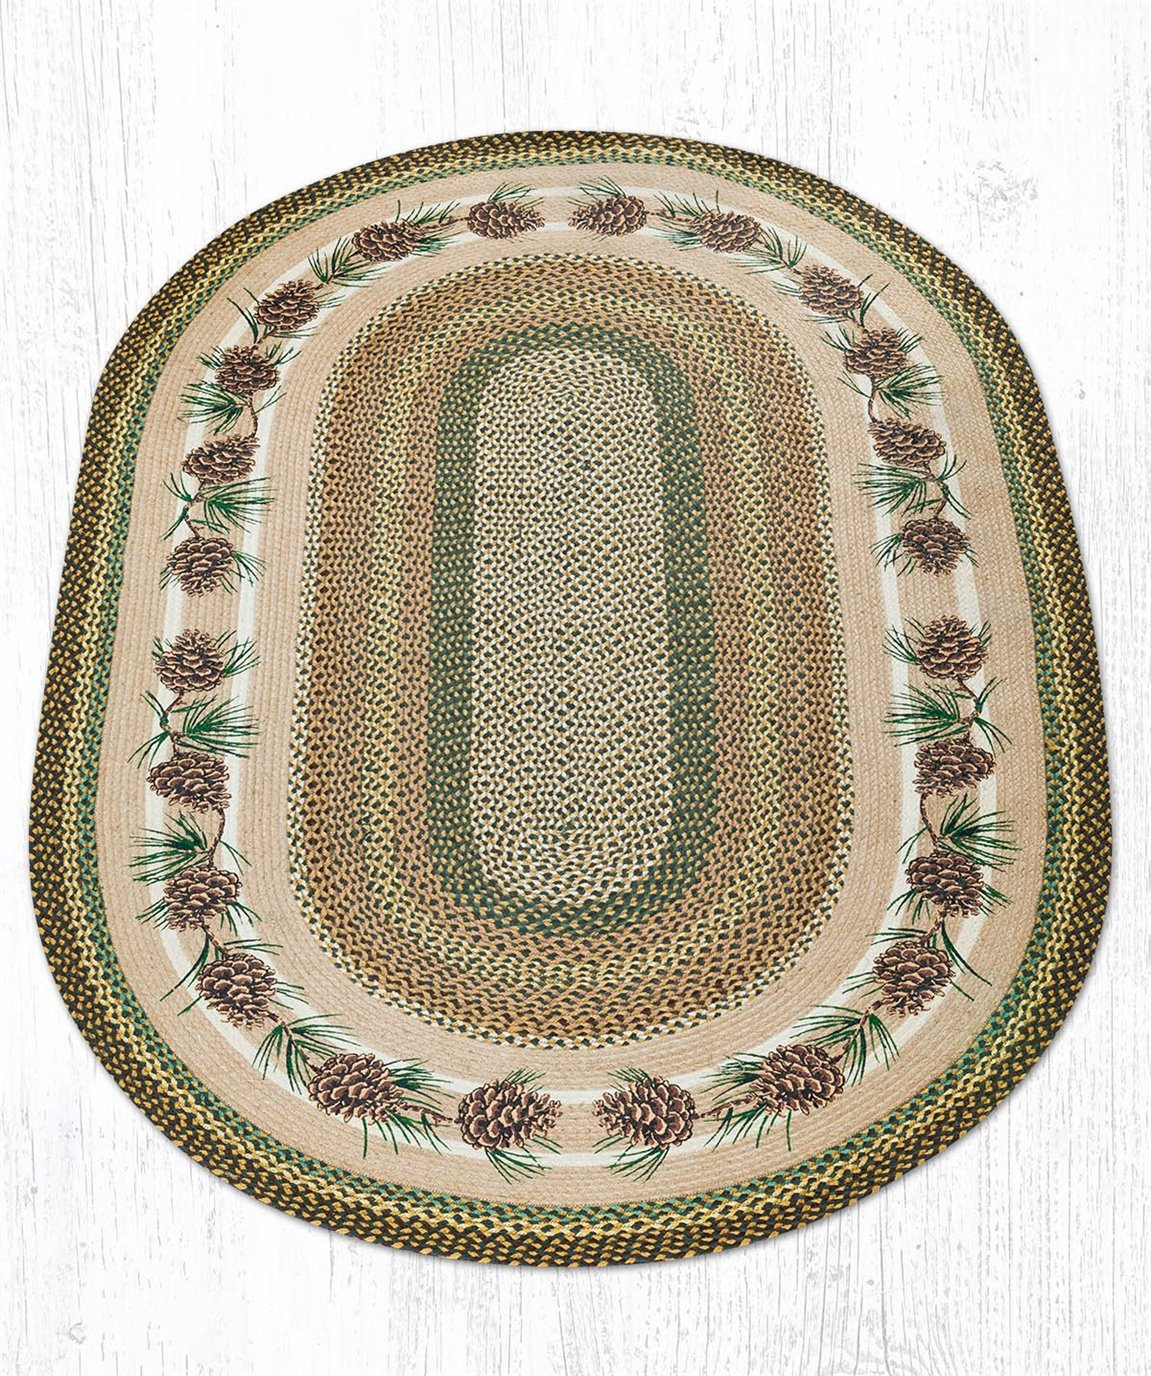 Needles & Cones Oval Braided Rug 5'x8'